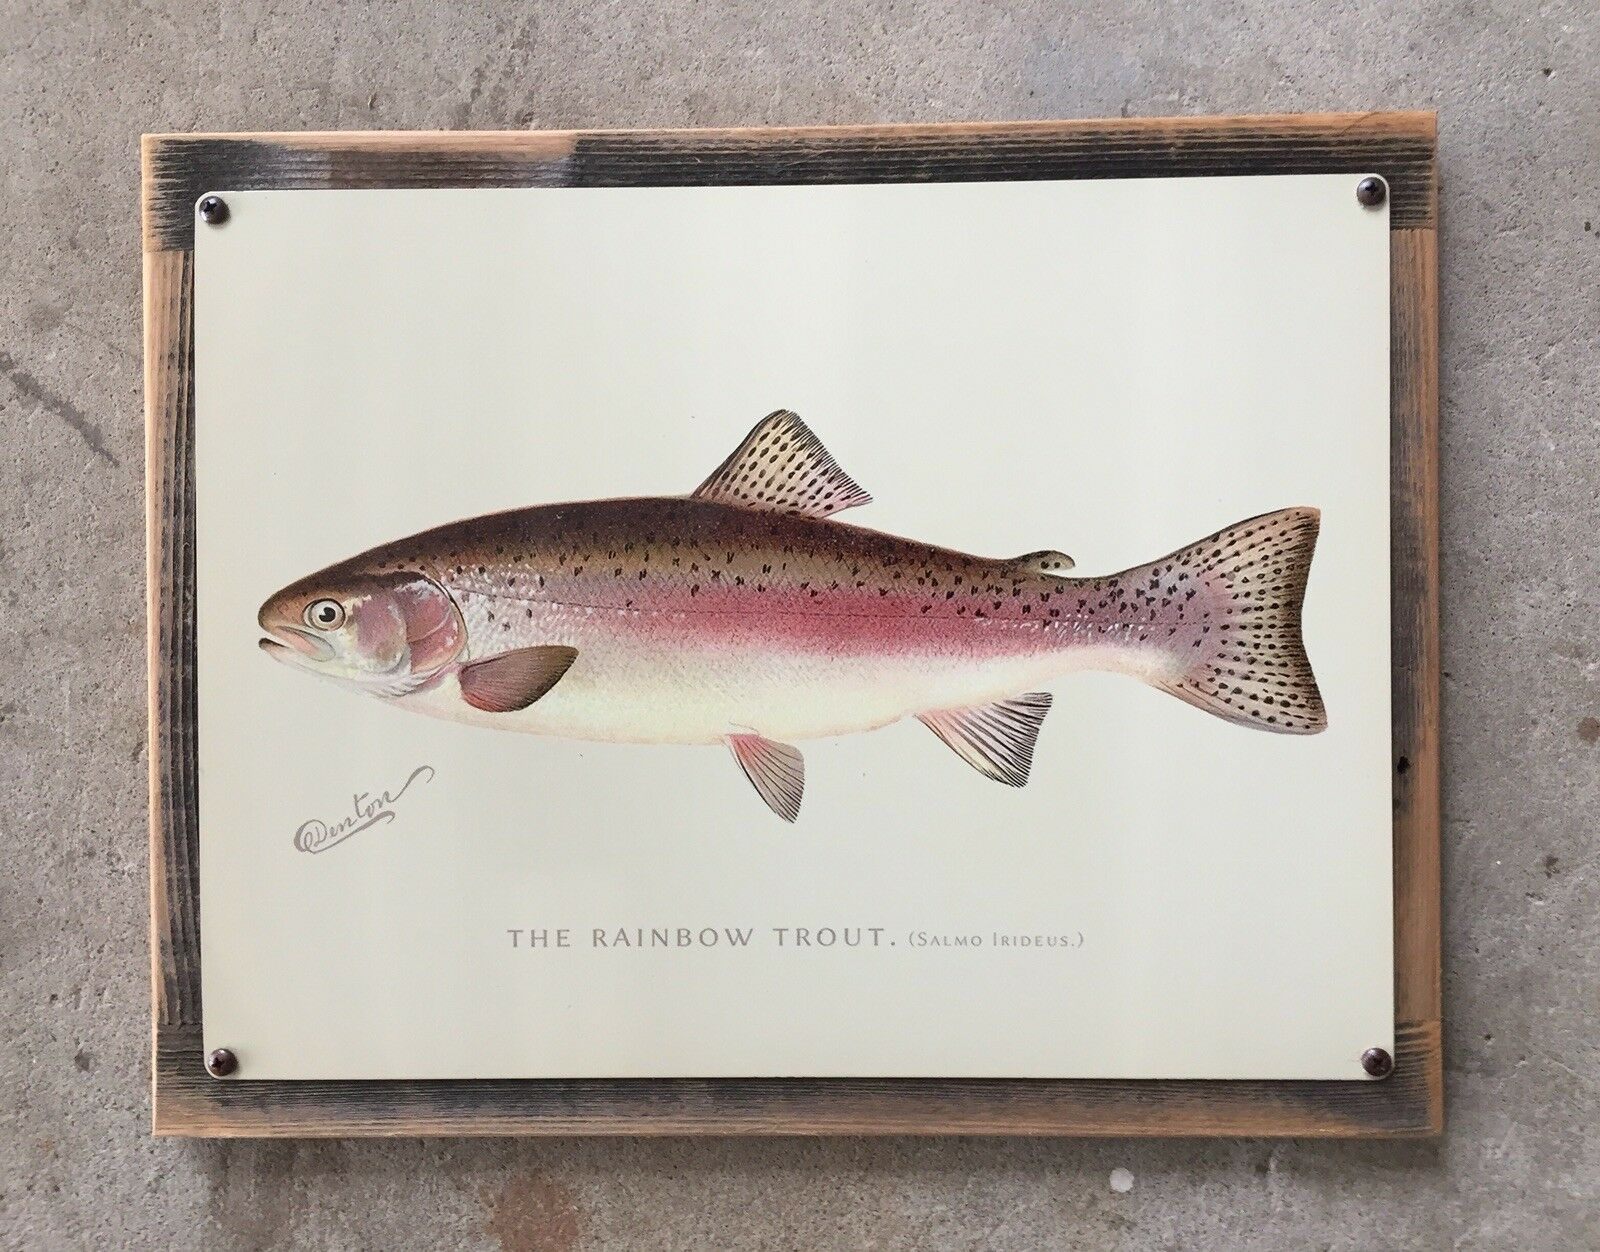 Denton Rainbow Trout  Fish Fishing Vintage Framed  Steel Print Sign New York NY  check out the cheapest